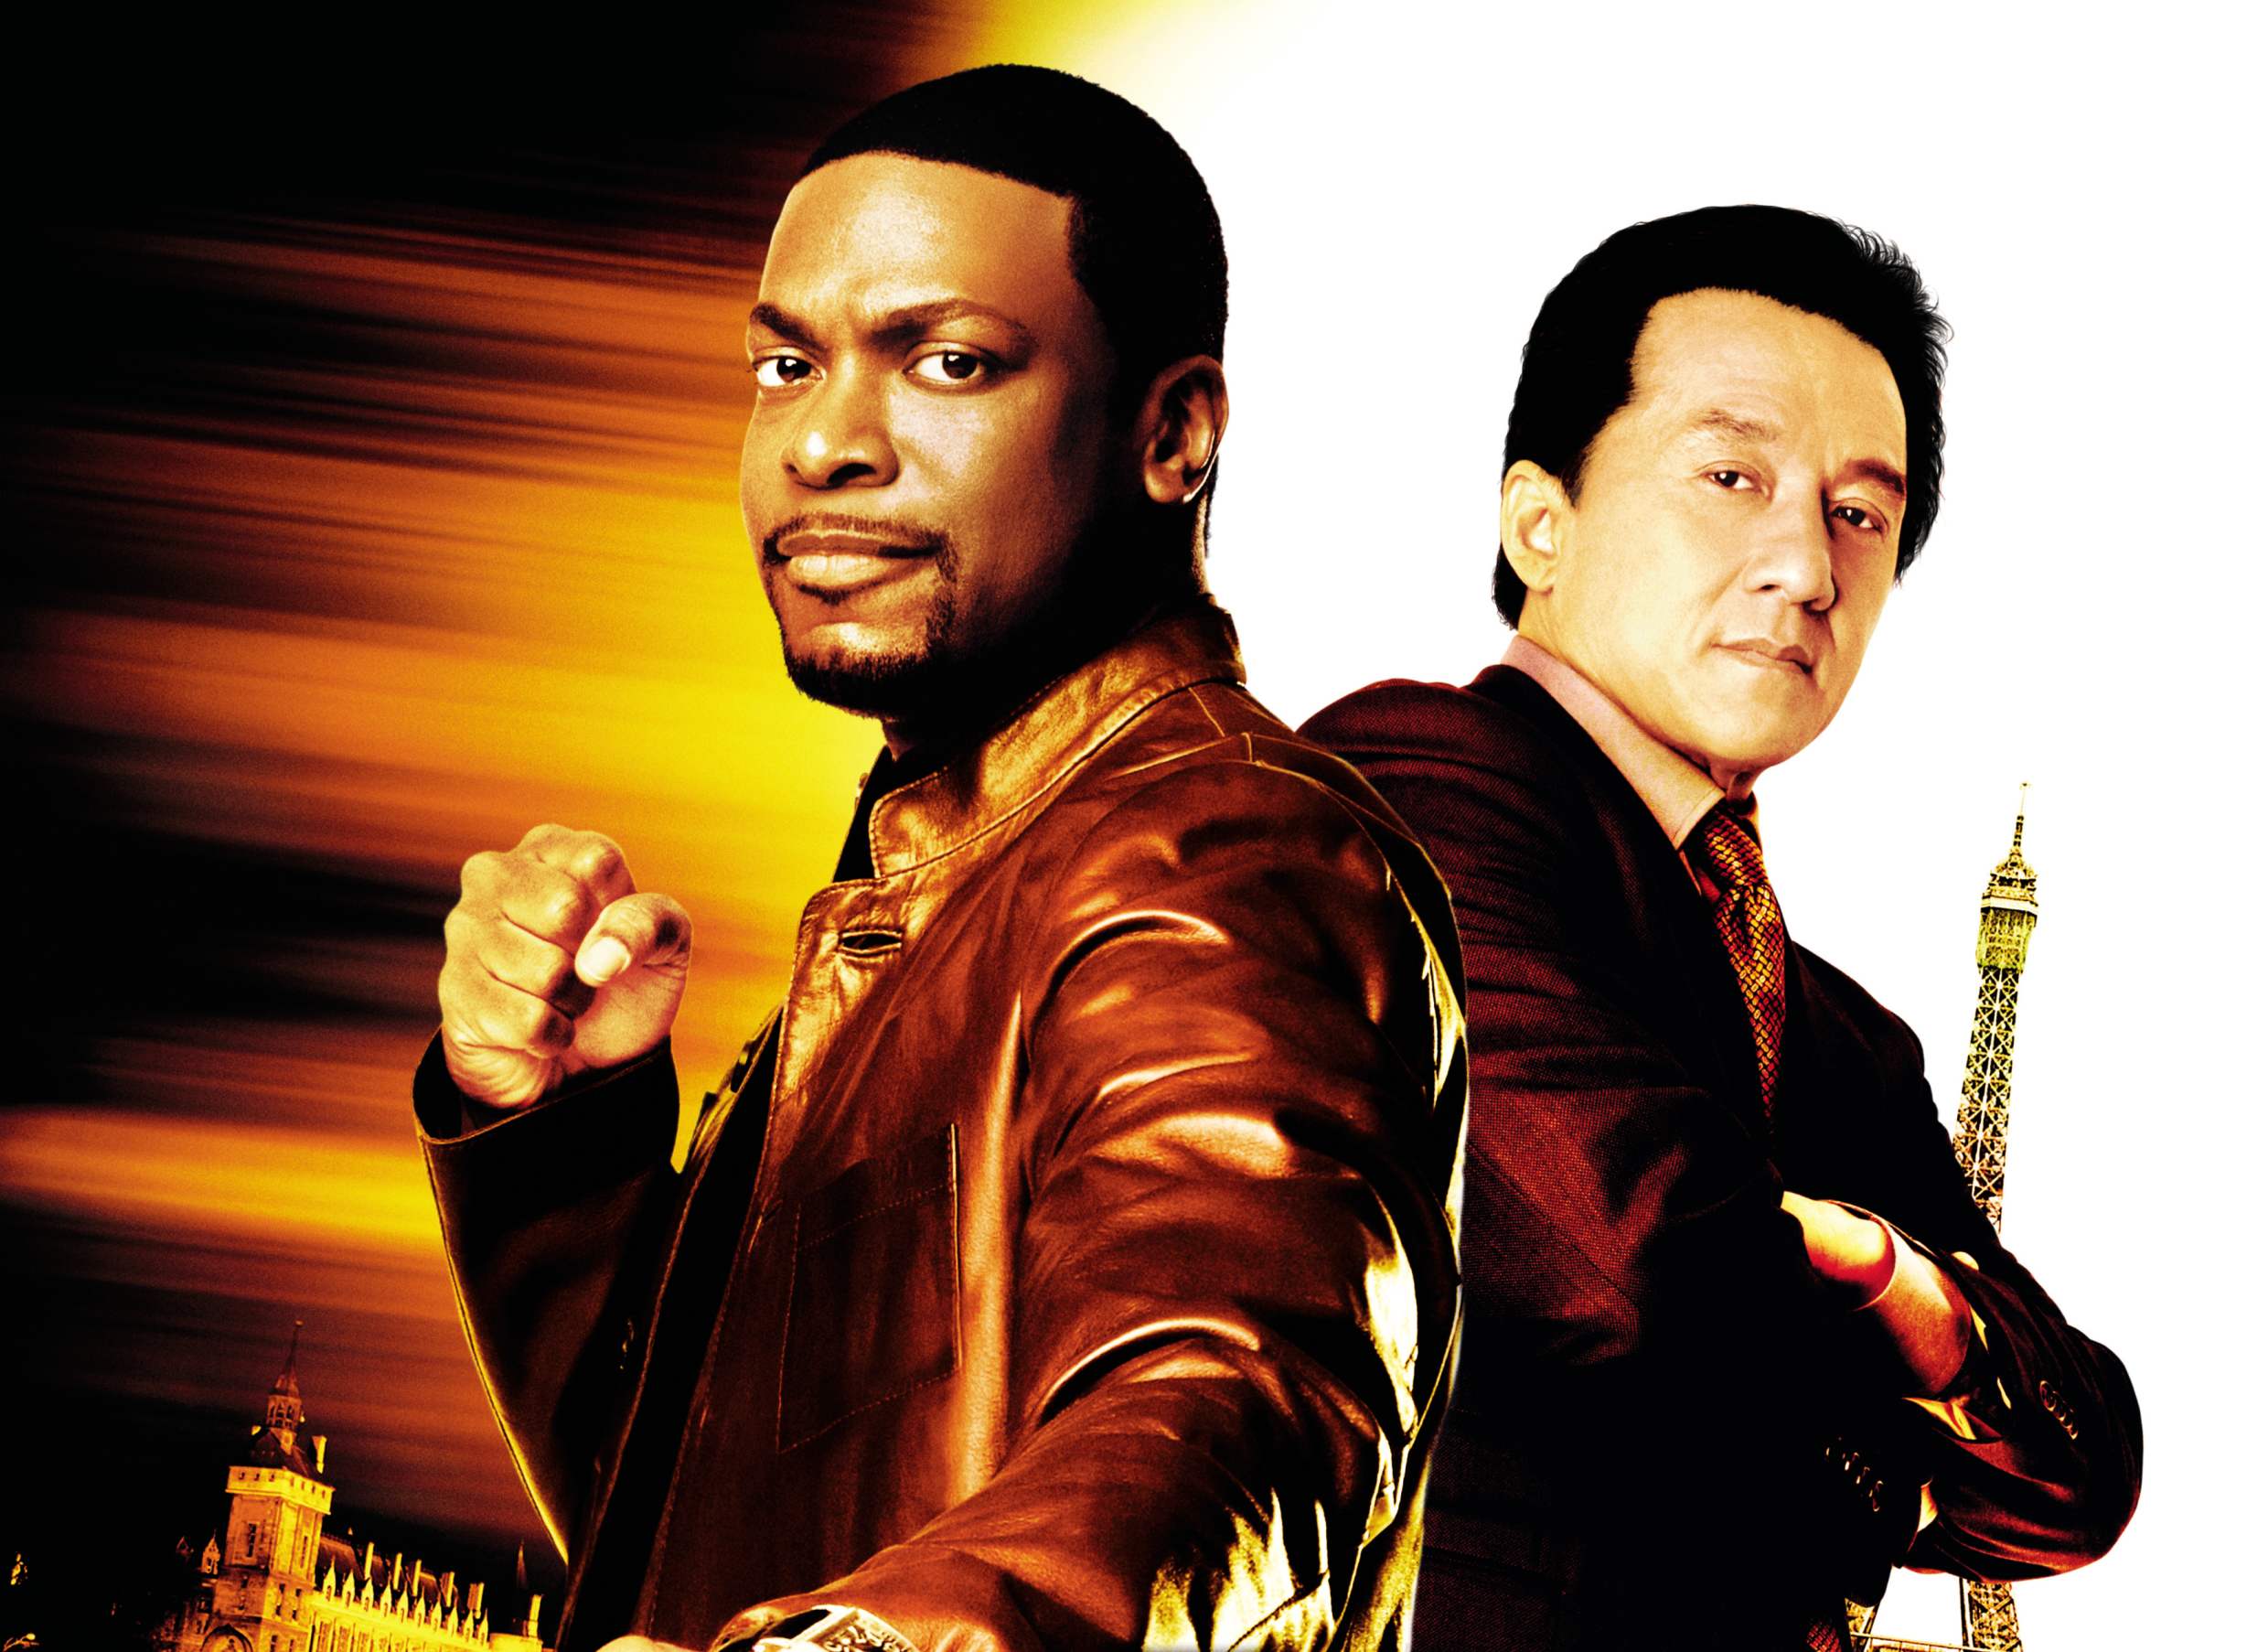 an comparison of charlie chan and rush hour movies Jackie chan is hoping to film the fourth instalment of the rush hour franchise in 2018the movies share rush hour 4 rush hour 4 jackie chan hopes to start.